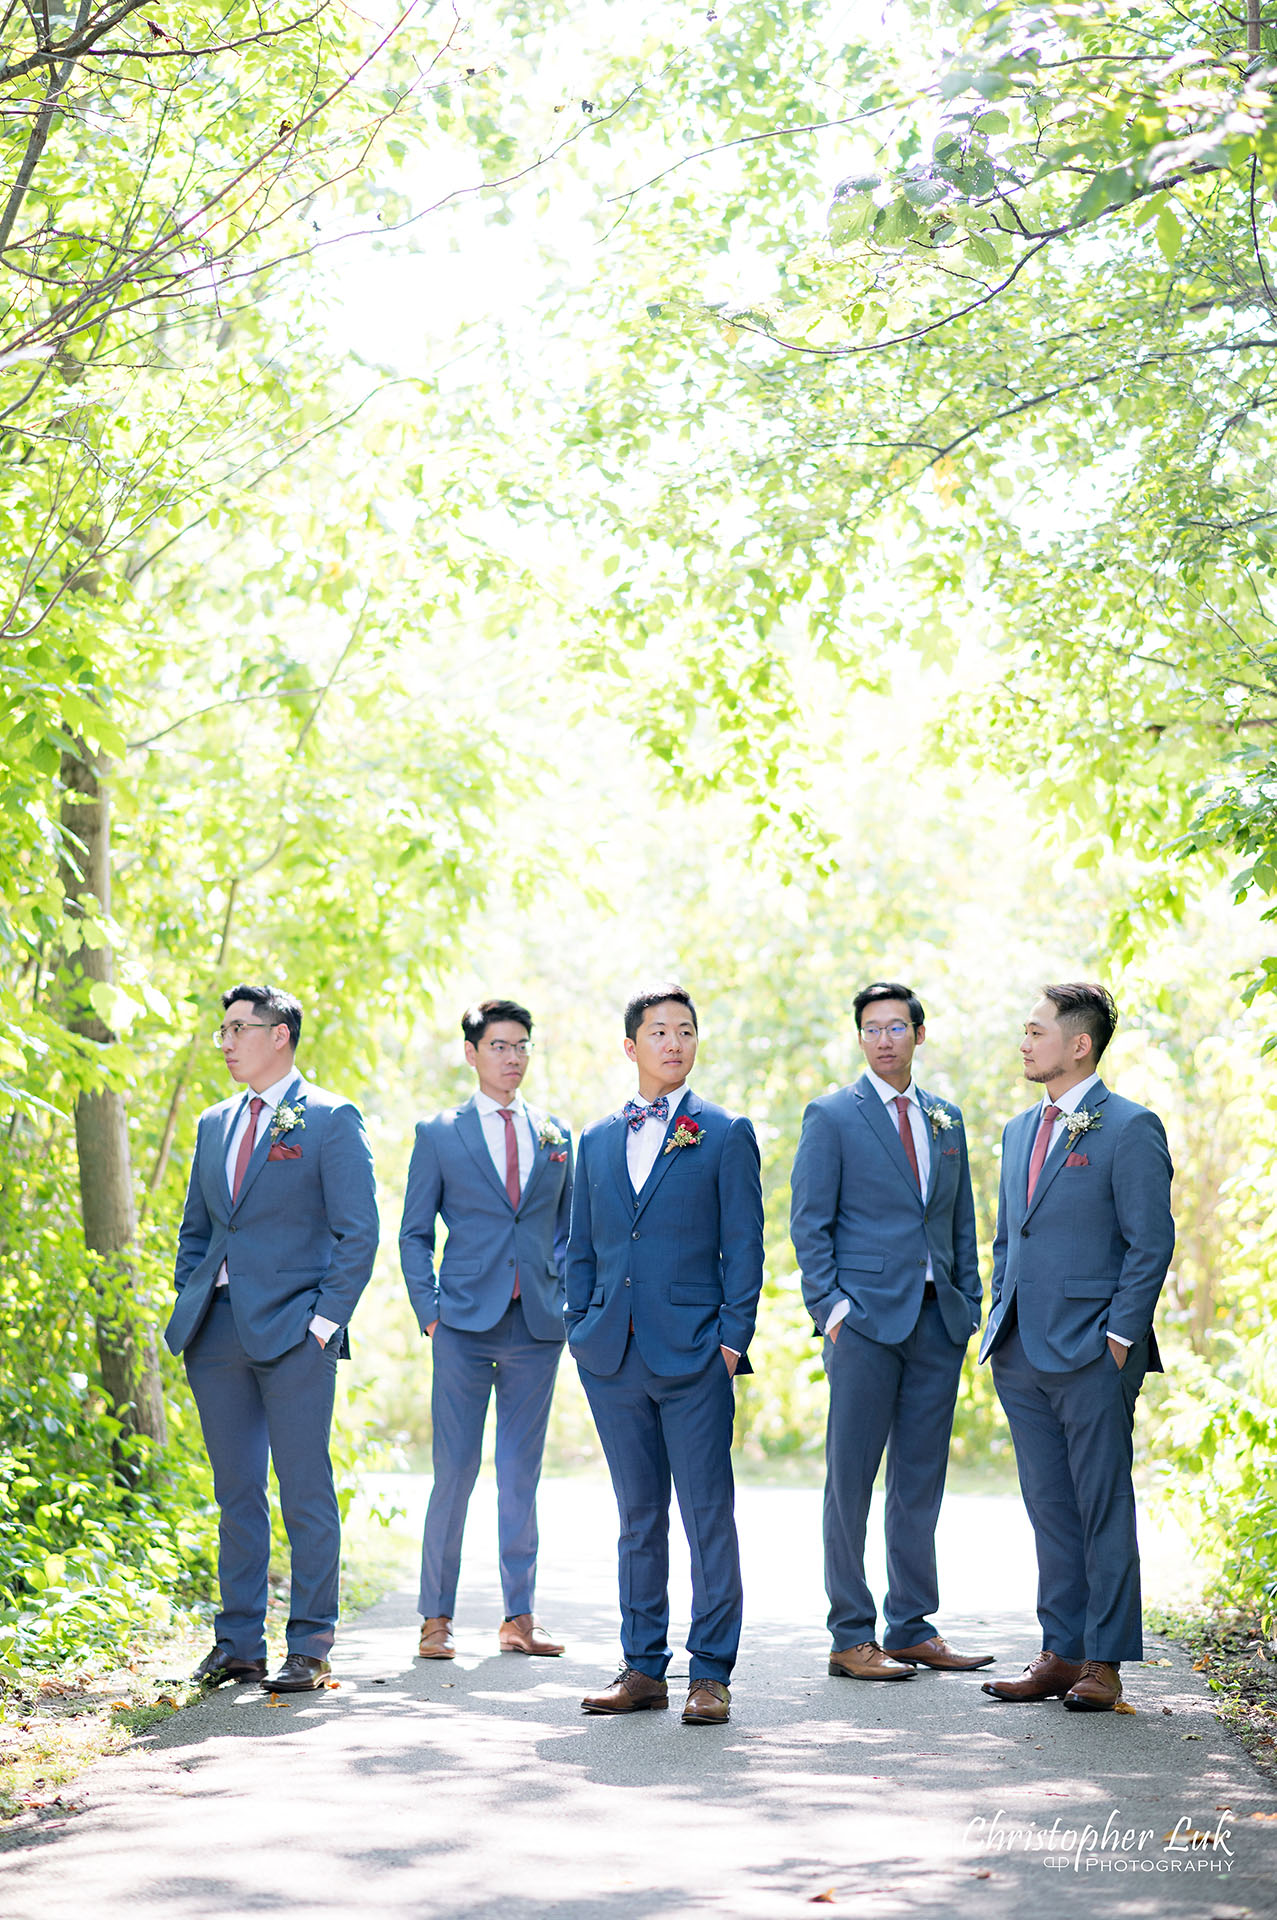 Christopher Luk Toronto Wedding Photographer Bridle Trail Baptist Church Unionville Main Street Crystal Fountain Event Venue Bride Groom Natural Photojournalistic Candid Creative Portrait Session Pictures Forest Best Man Groomsmen Stylish Boy Band Cool